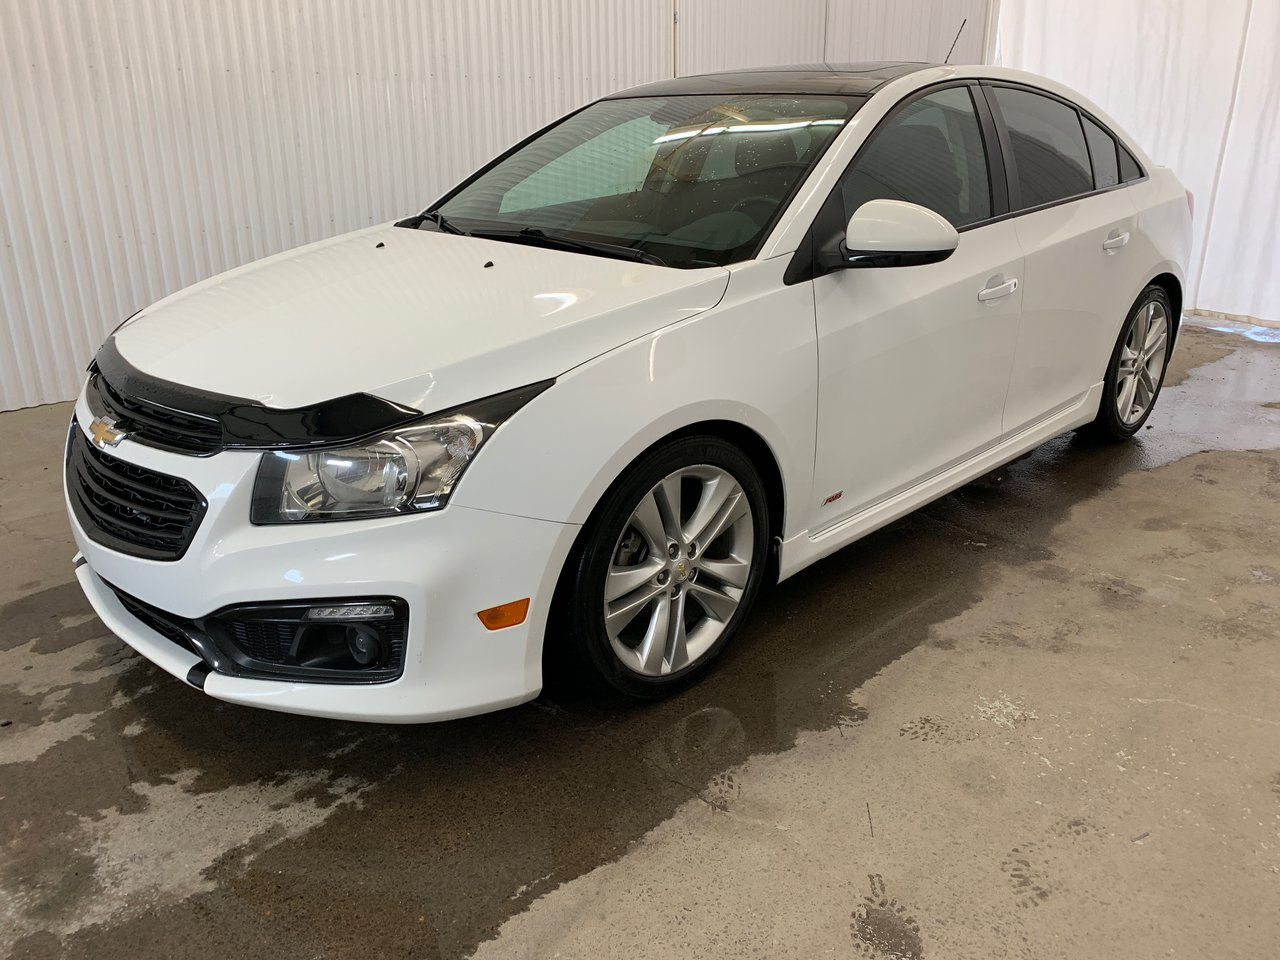 Chevrolet Cruze Limited 2016 2LT RS Cuir Toit ouvrant Cam?ra MAGS